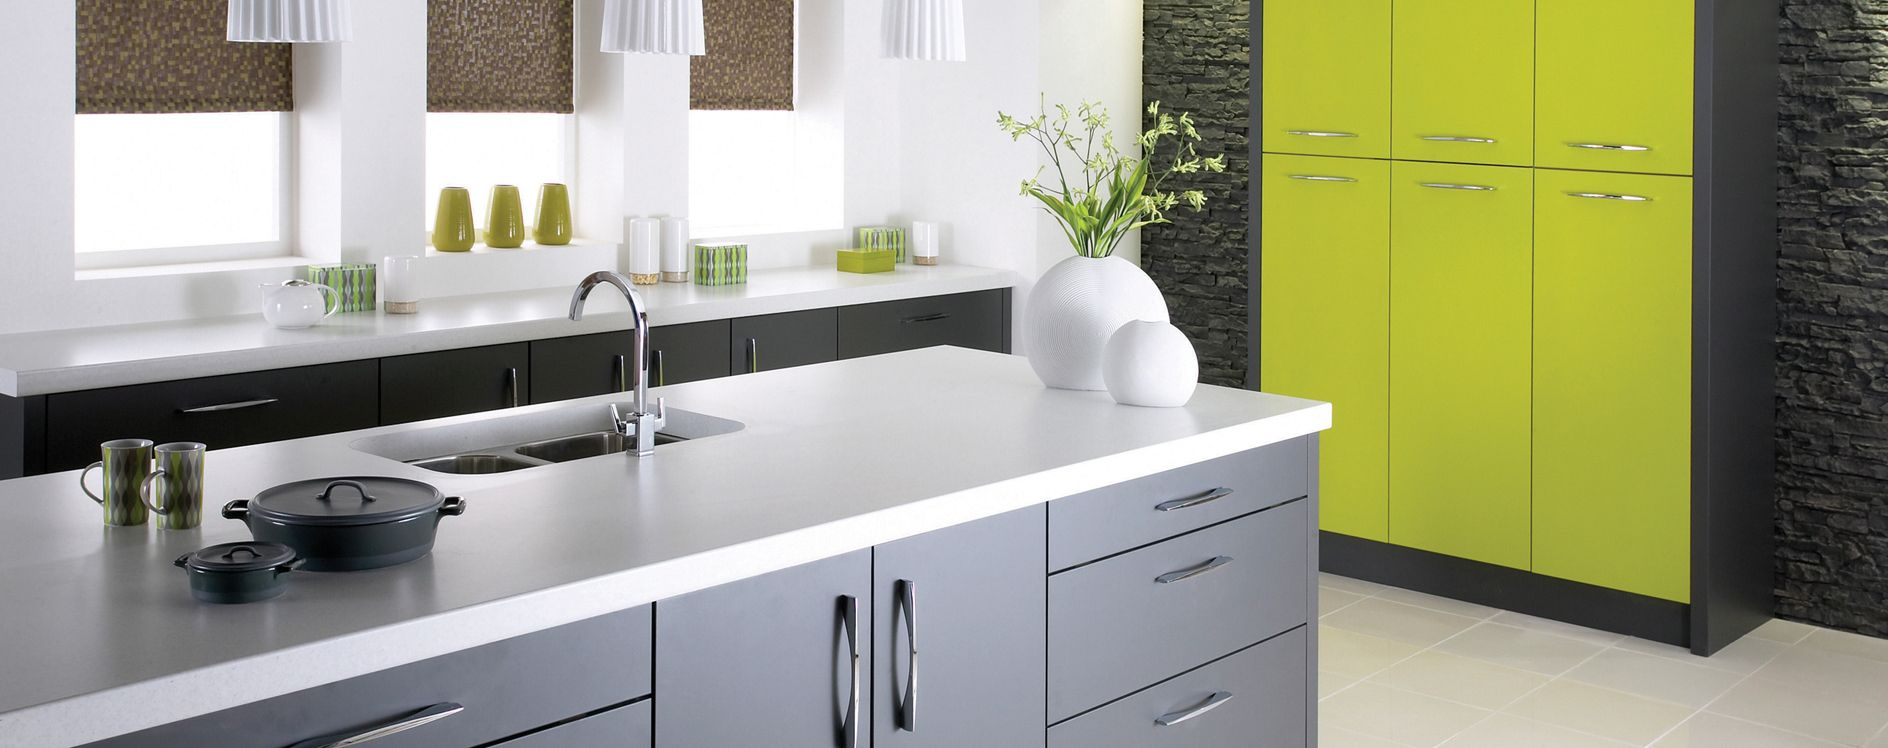 Anthracite And Lime Kitchen Design. Burbidge Alto From KAM Design Preston.  Central Island With Part 46